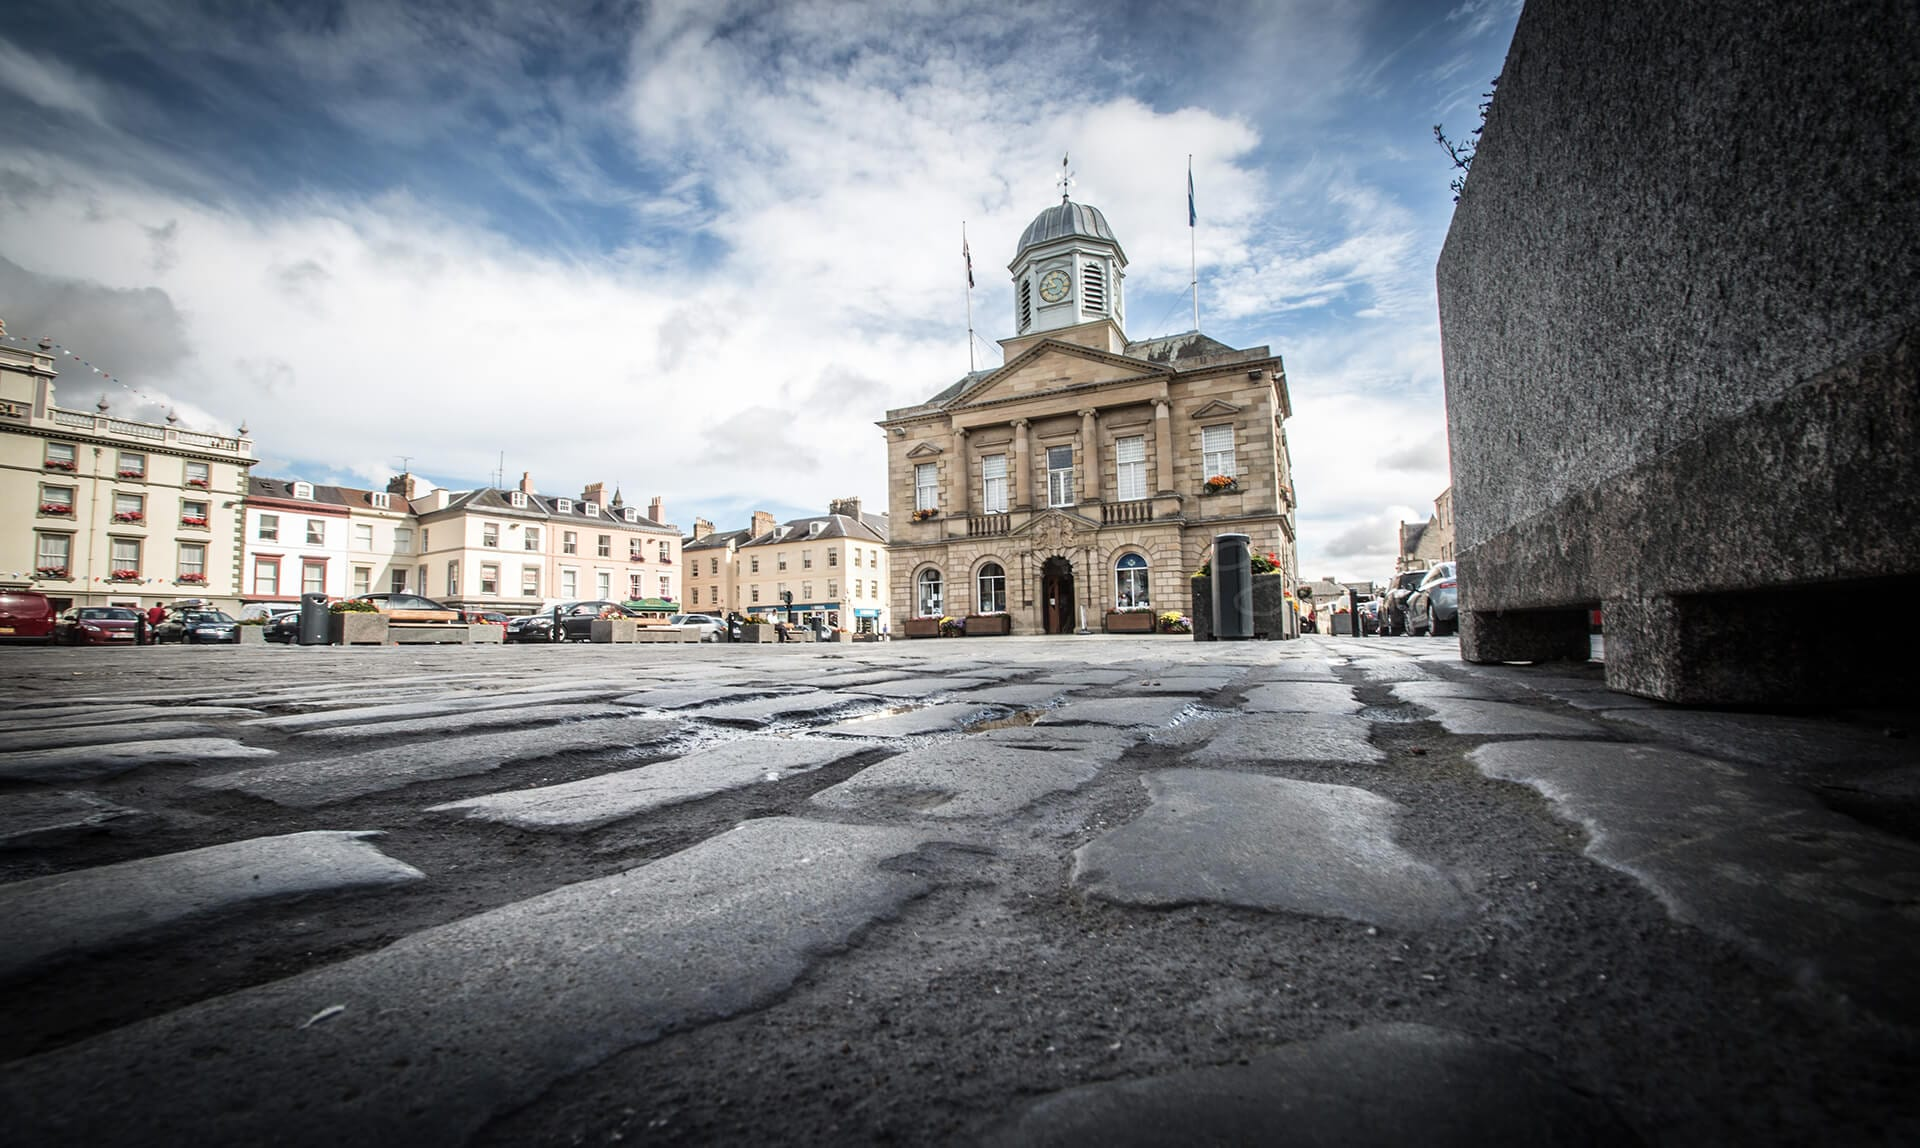 View of Kelso town hall from a very low angle showing cobbles in the foreground.